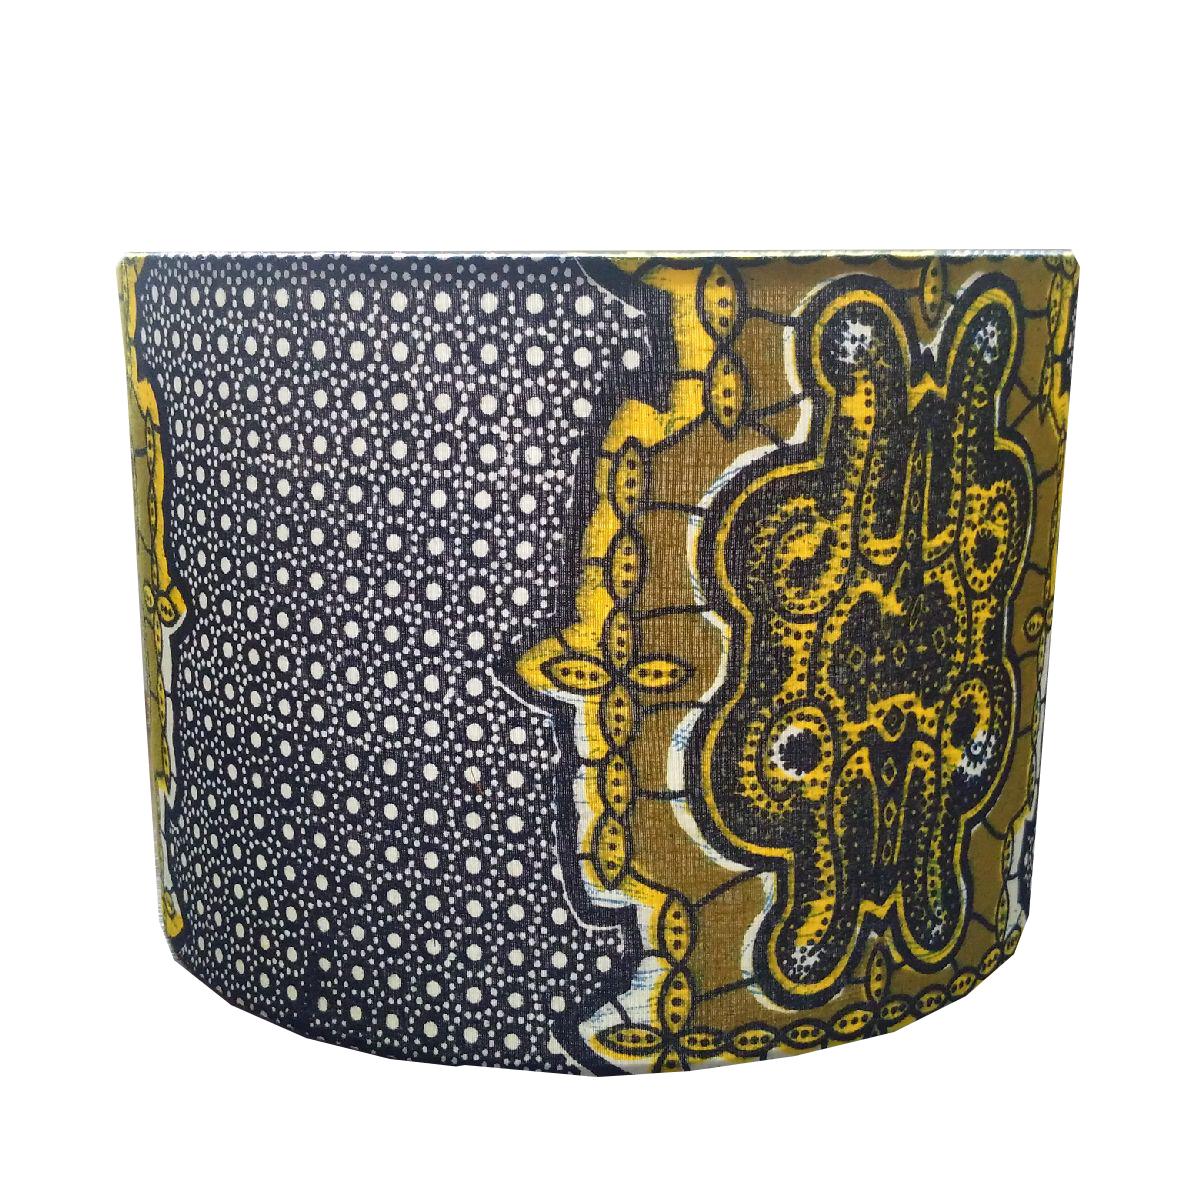 New Lampshade Design Blue Yellow Tribal African Lamp Shade